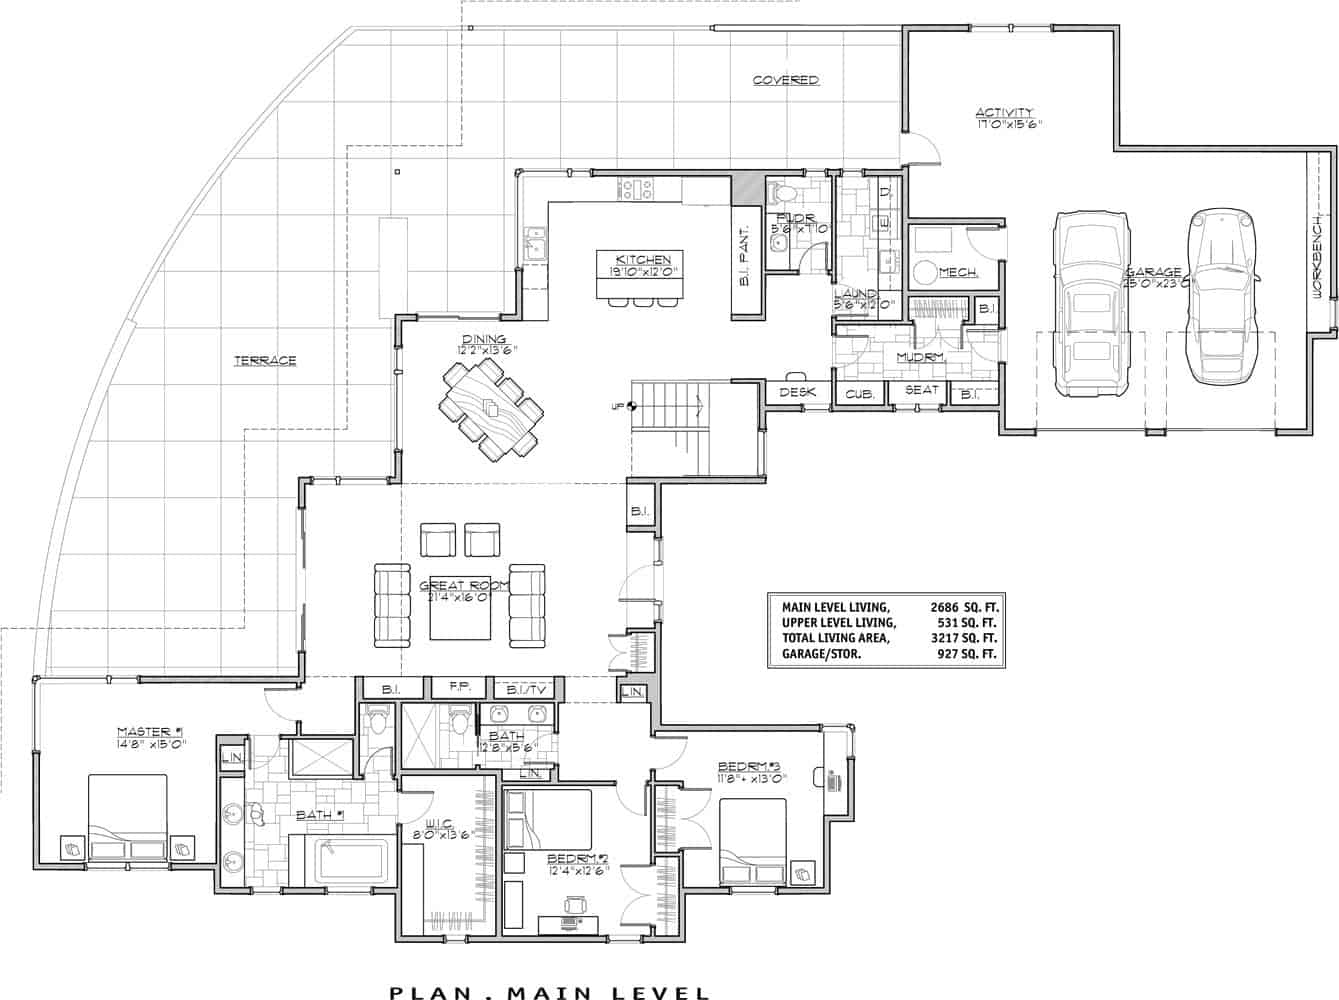 Main level floor plan of a two-story 3-bedroom contemporary home with great room, dining area, kitchen, three bedrooms, a courtyard, and an expansive terrace.